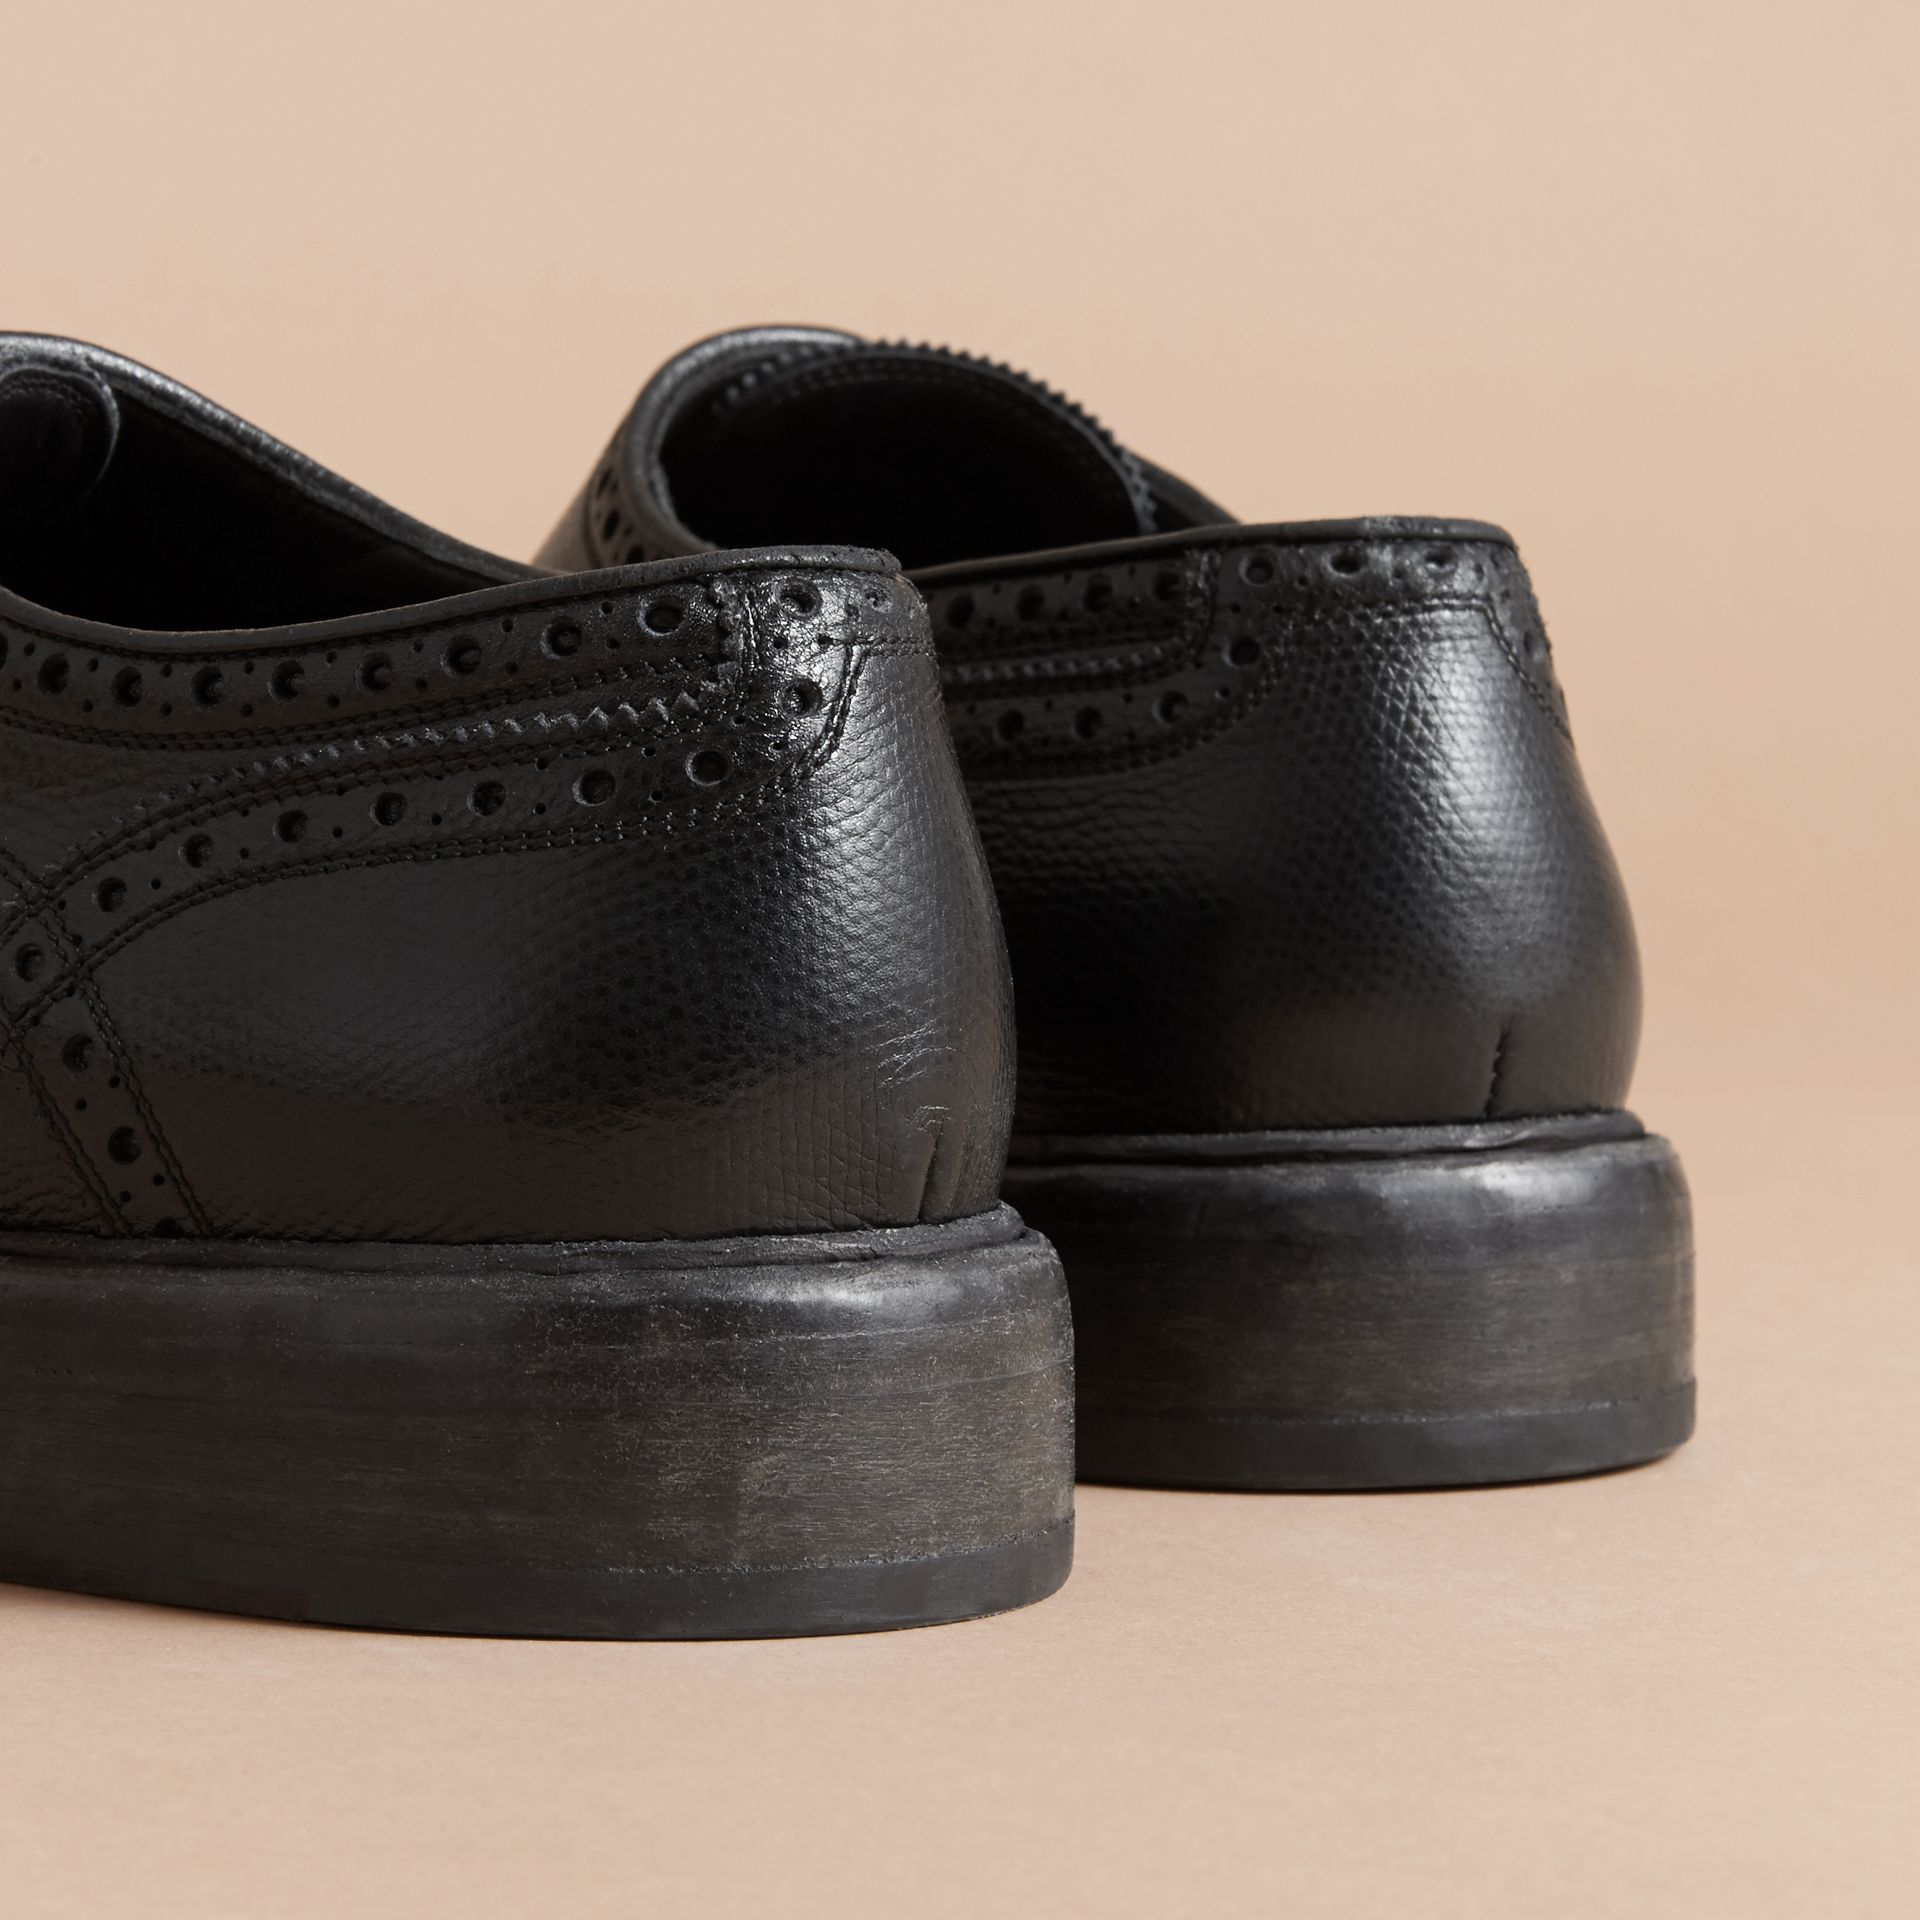 Leather Brogues with Asymmetric Closure in Black - Men | Burberry Canada - gallery image 4